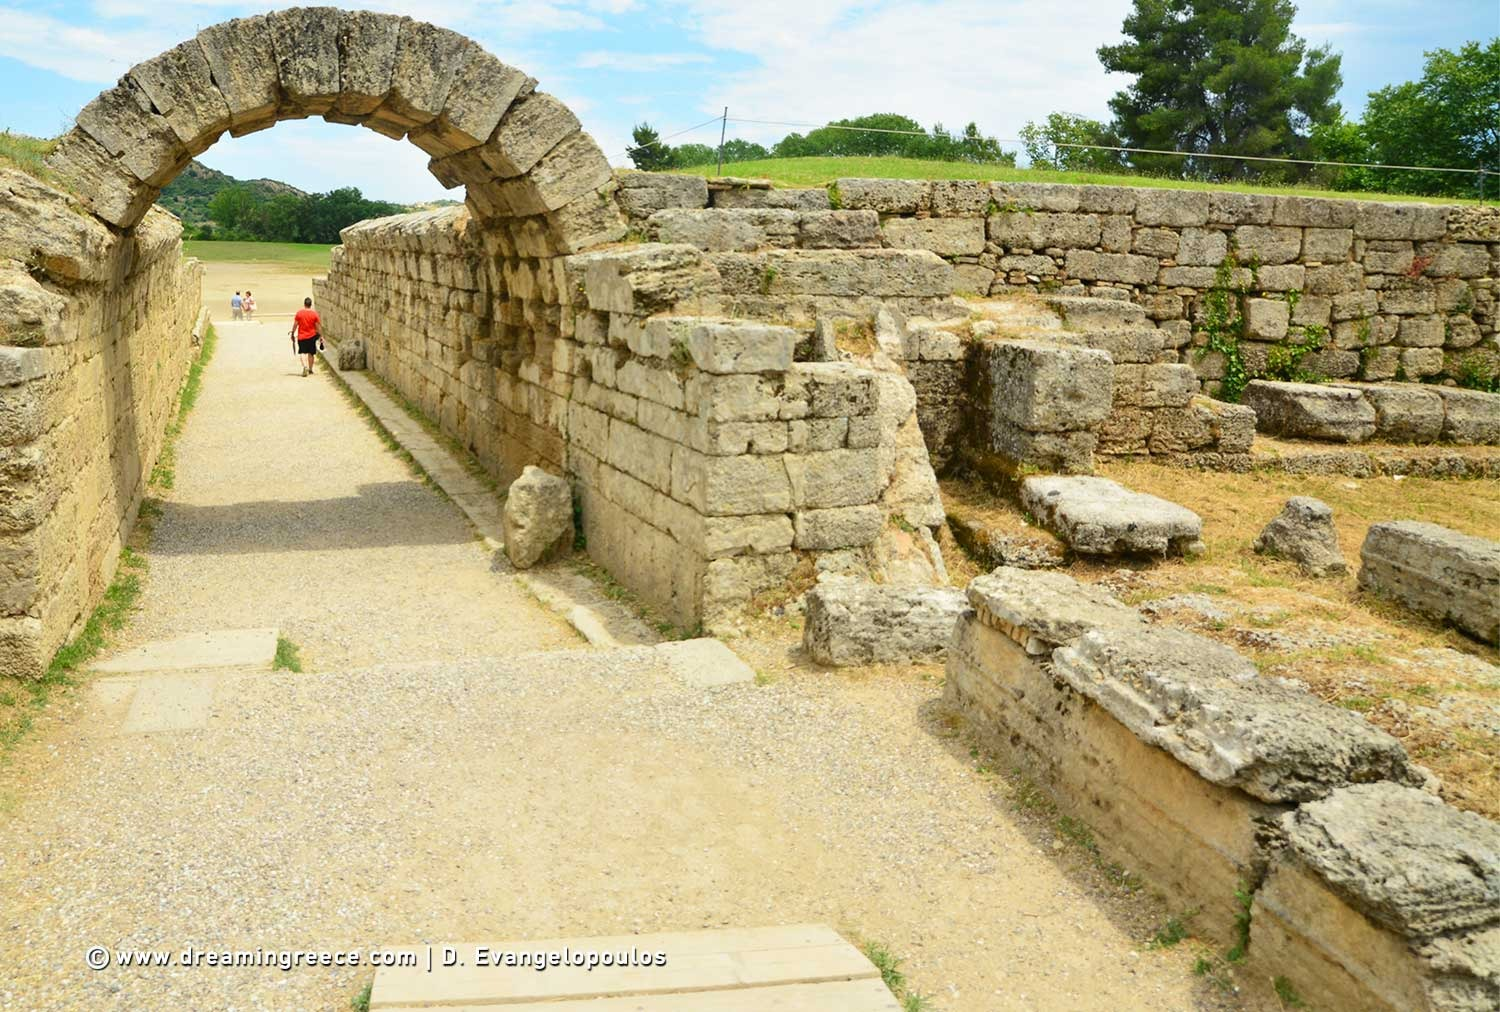 Holidays in Ancient Olympia Ilia Peloponnese Greece